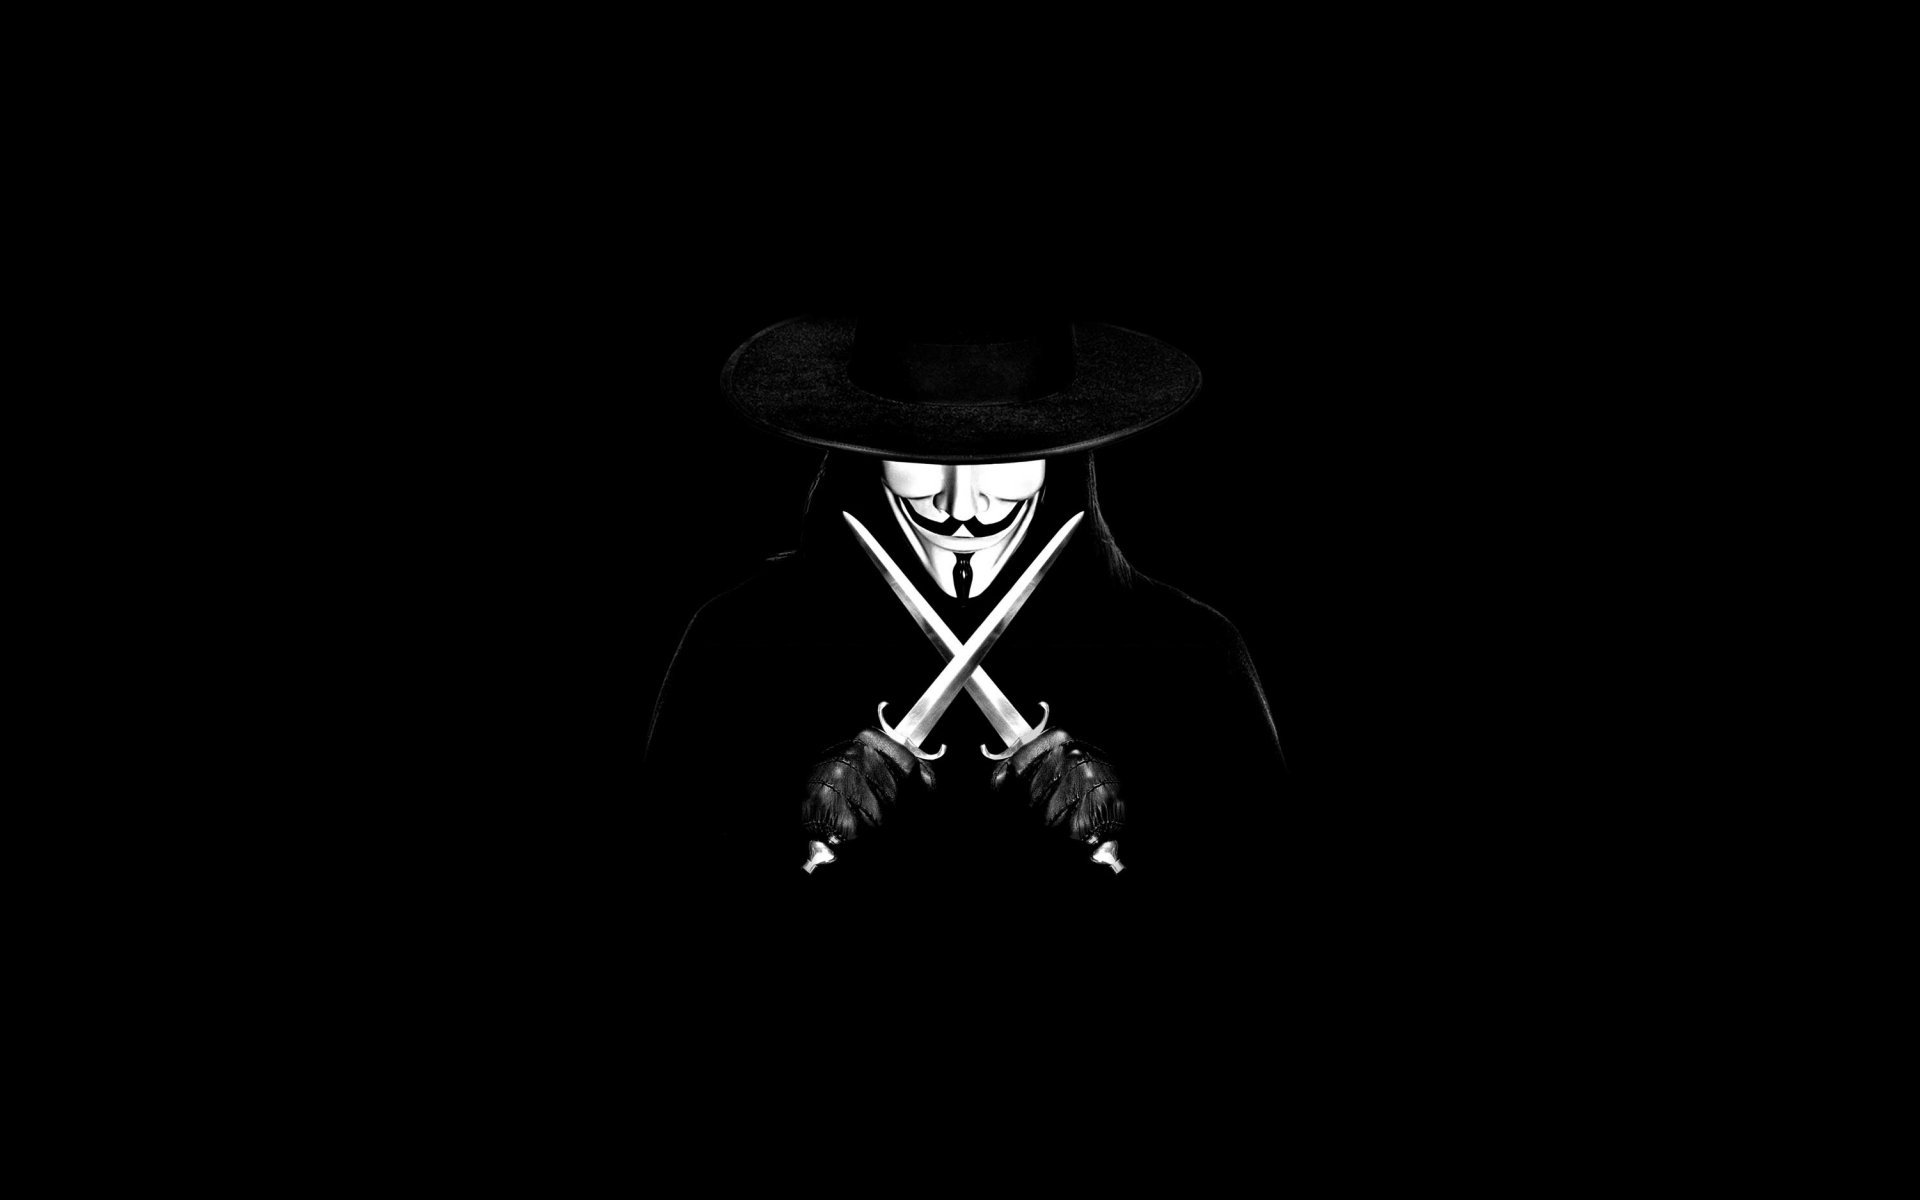 Vendetta Wallpaper